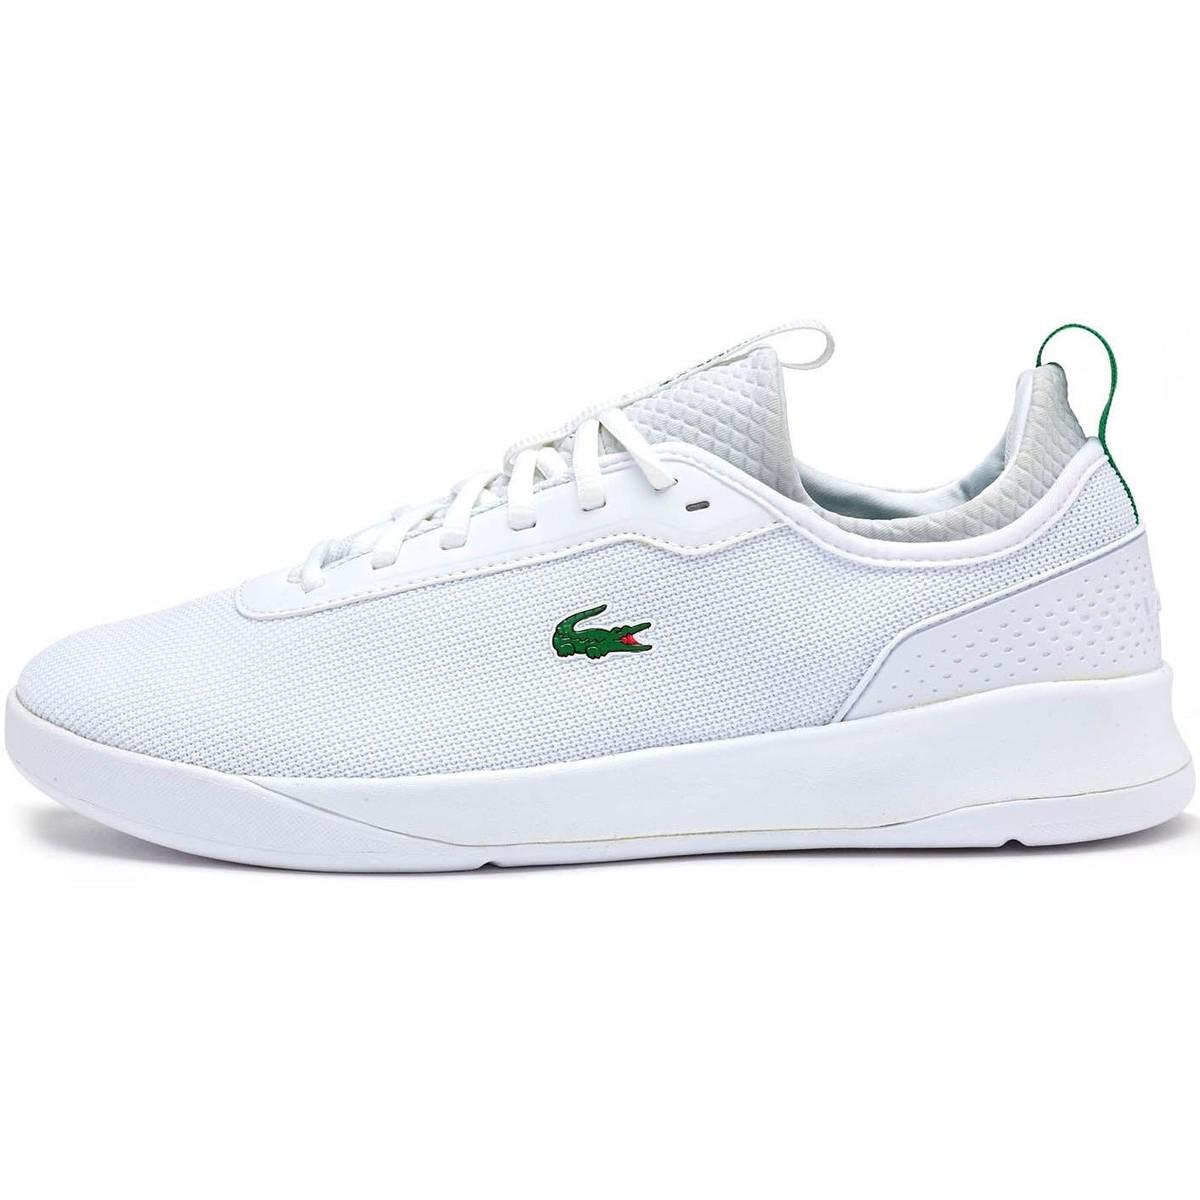 9a9c7da55949 Lacoste Lt Spirit 2.0 317 1 Spm Trainers In White Green 734spm0024 ...